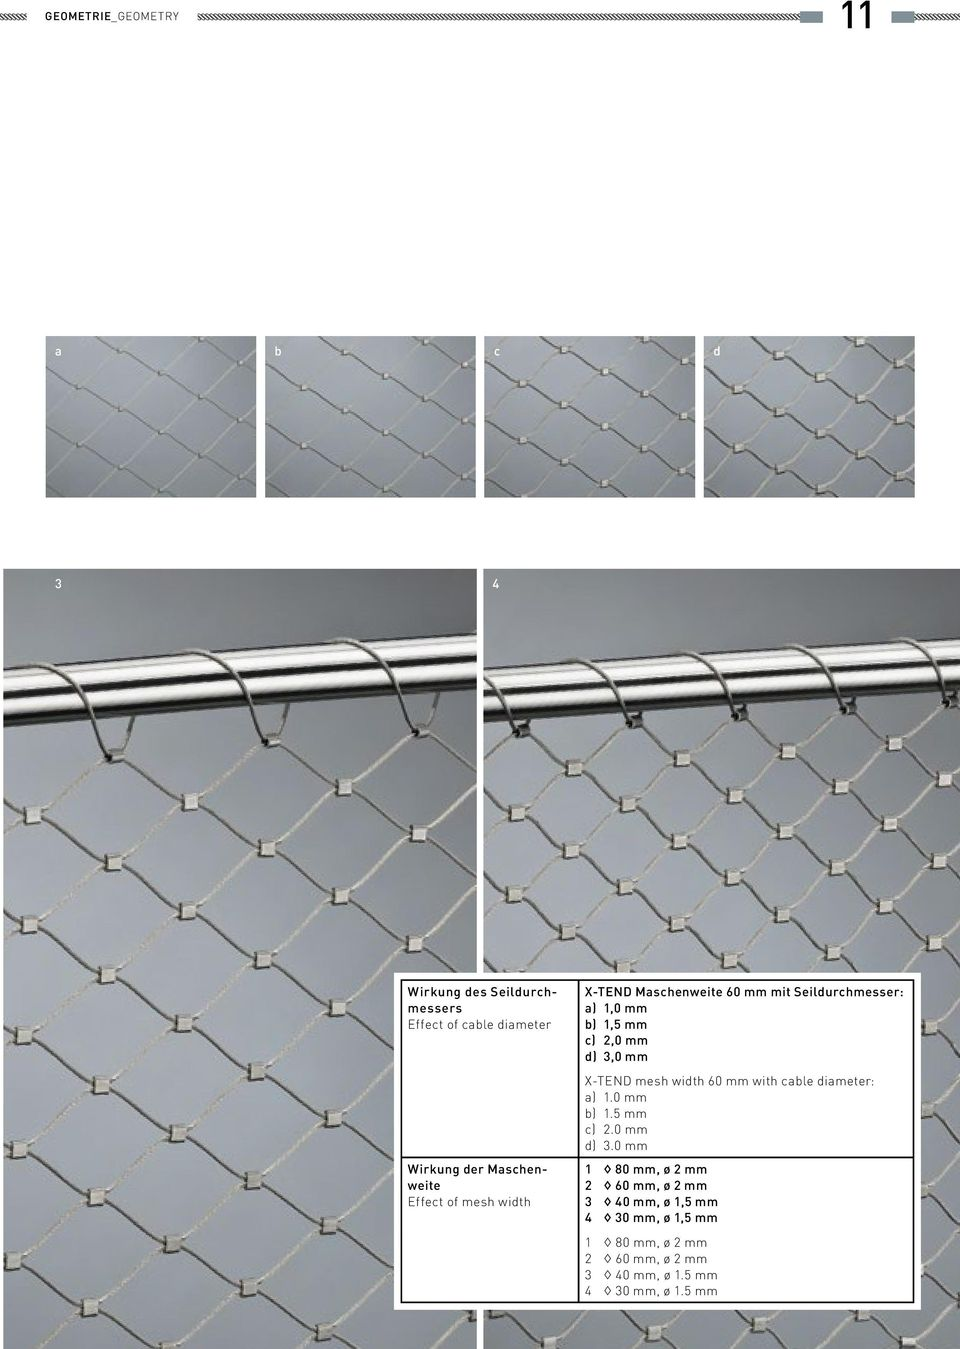 d) 3,0 mm X-TEND mesh width 60 mm with cable diameter: a) 1.0 mm b) 1.5 mm c) 2.0 mm d) 3.